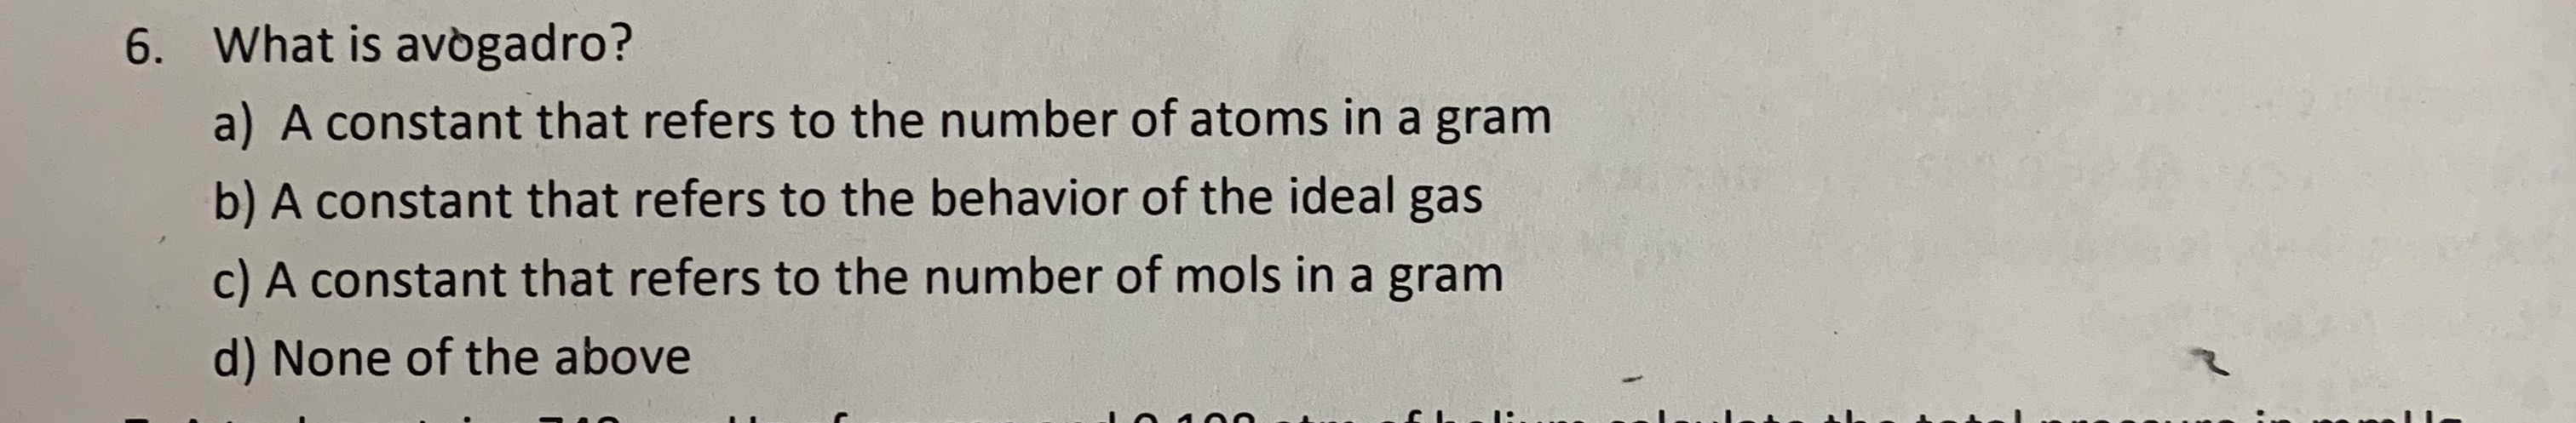 What is avogadro? 6. a) A constant that refers to the number of atoms in a gram b) A constant that refers to the behavior of the ideal gas c) A constant that refers to the number of mols in a gram d) None of the above